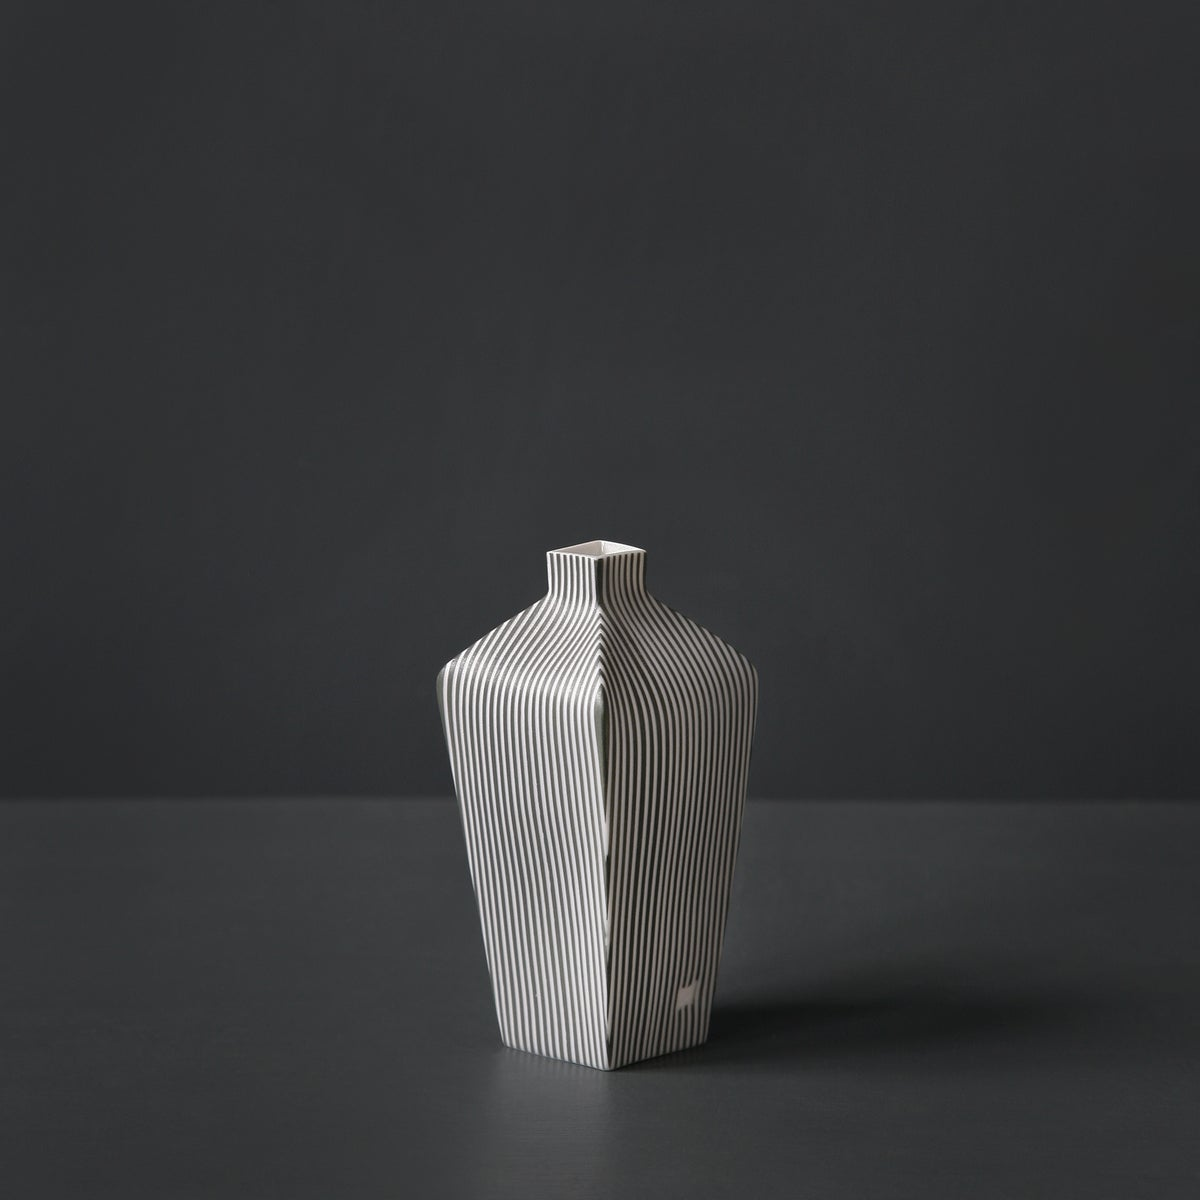 Image of Tapered Stripe Vessel #1 by Justine Allison.